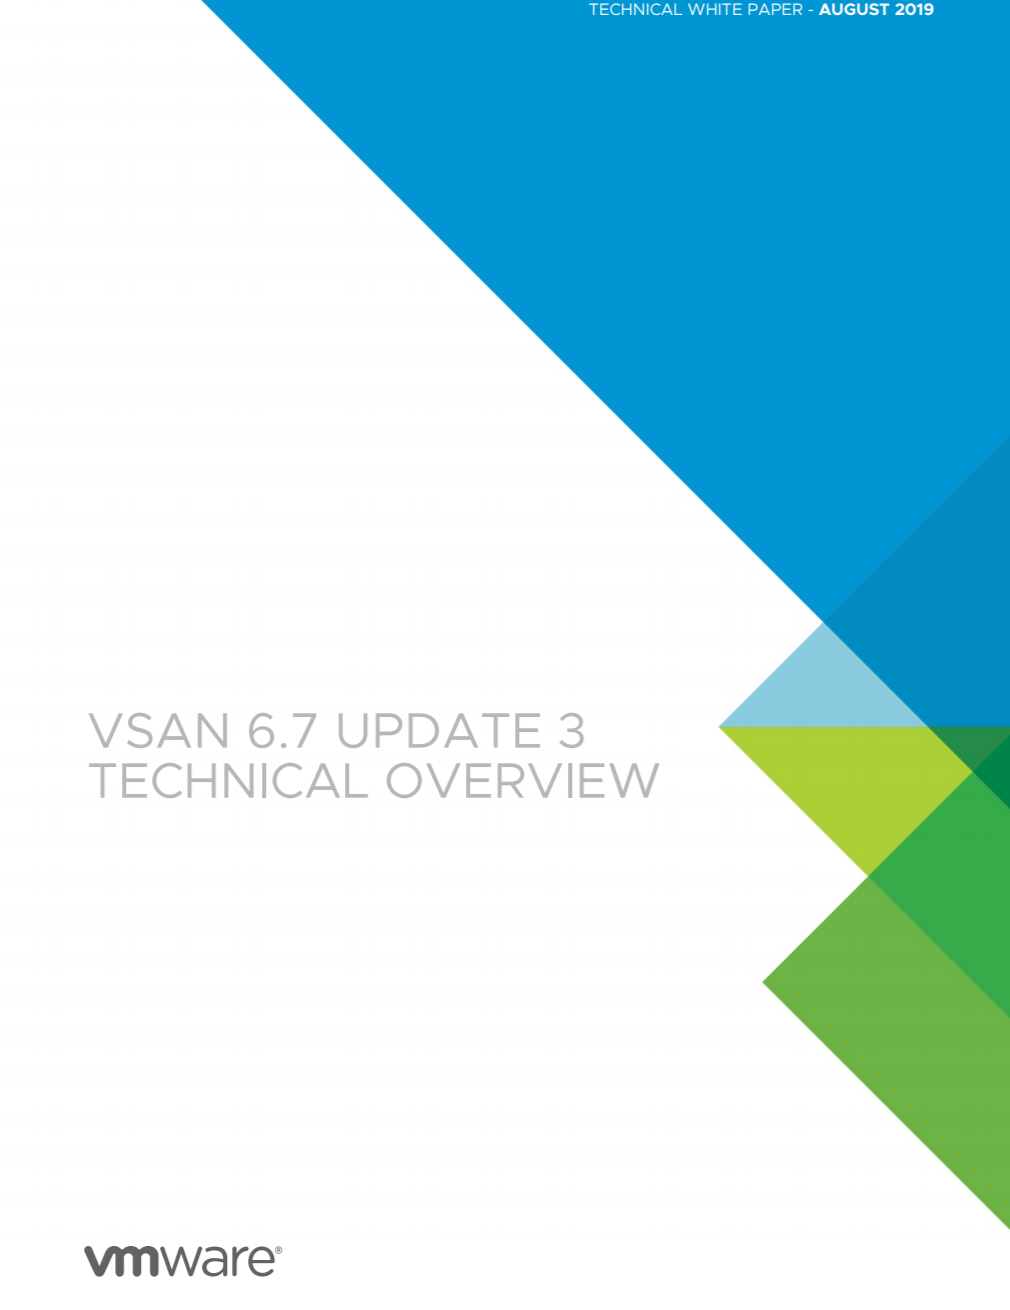 vSAN 6.7 Update 3 Technical Overview.pdf